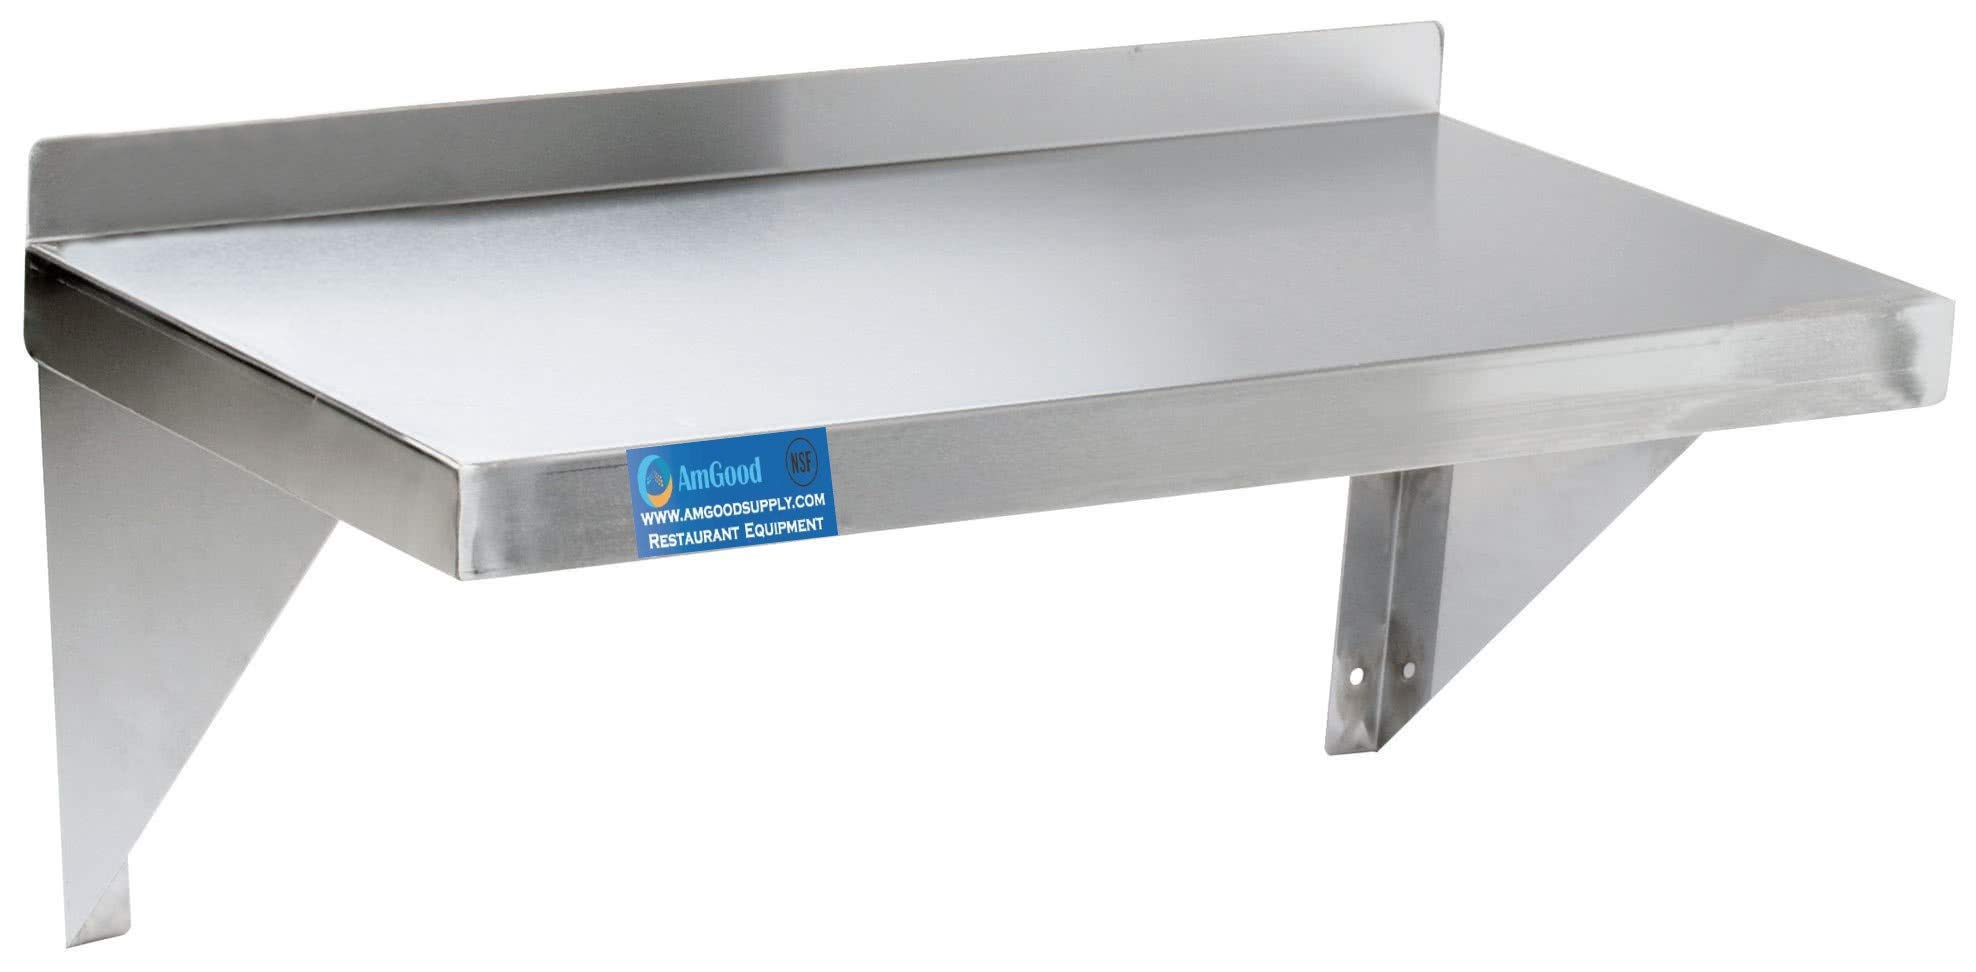 AmGood 18'' x 36'' Stainless Steel Wall Shelf | Appliance & Equipment Metal Shelving | Kitchen, Restaurant, Garage, Laundry, Utility Room | Heavy Duty | Squared Edge | NSF Certified